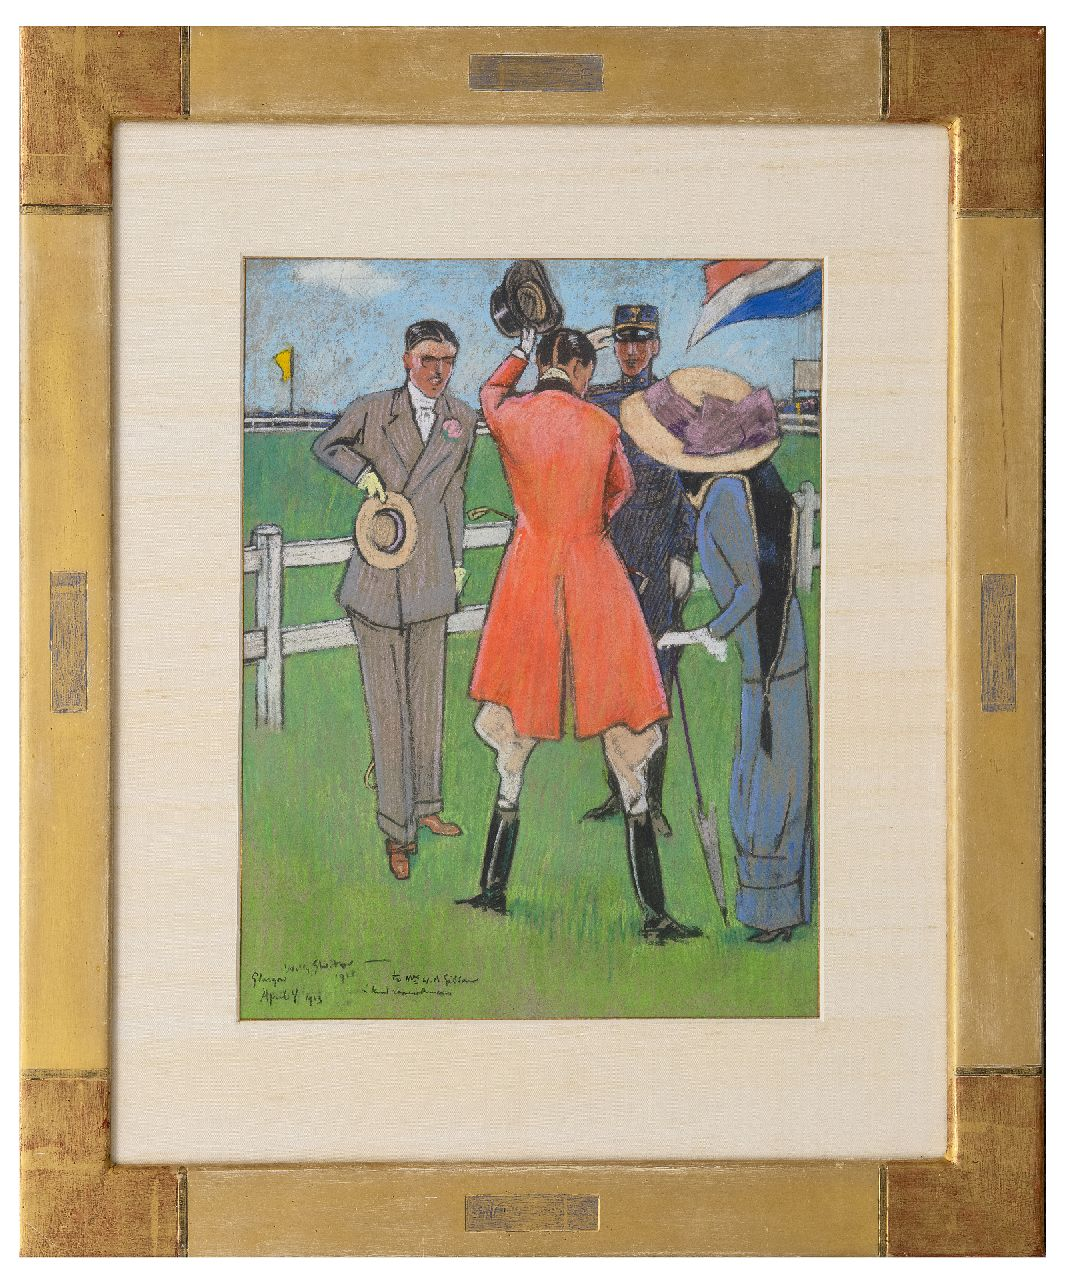 Sluiter J.W.  | Jan Willem 'Willy' Sluiter | Watercolours and drawings offered for sale | On the racecourse, pastel on paper 40.5 x 32.0 cm, signed l.l. and dated April 4 1911